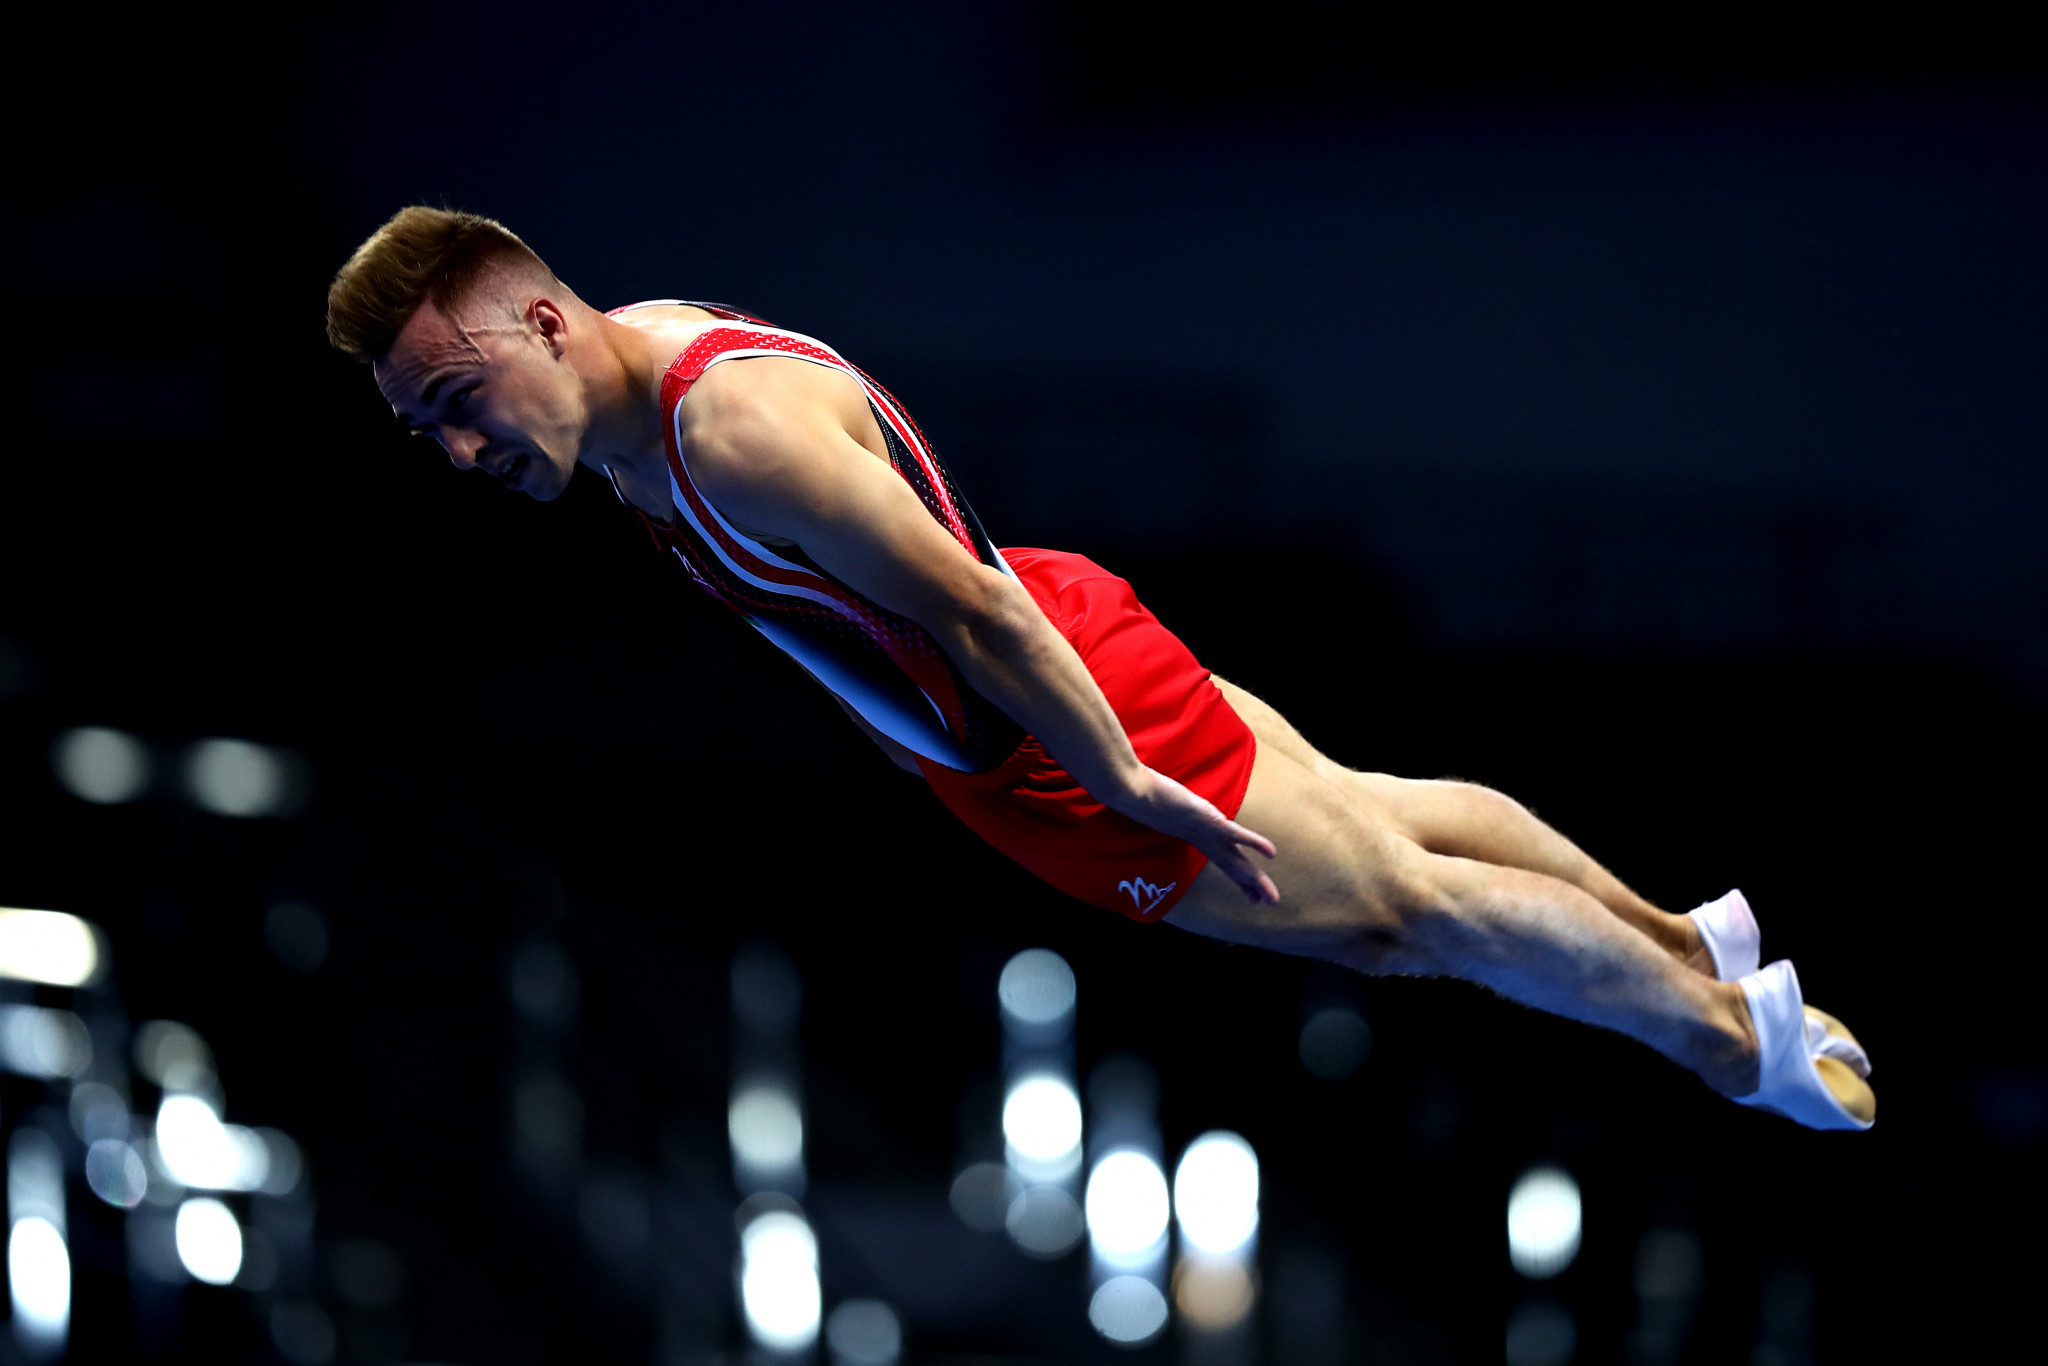 There was more success for Belarus in the trampoline gymnastics, with Rio 2016 Olympic champion Uladzislau Hancharou winning the men's individual event ©Getty Images